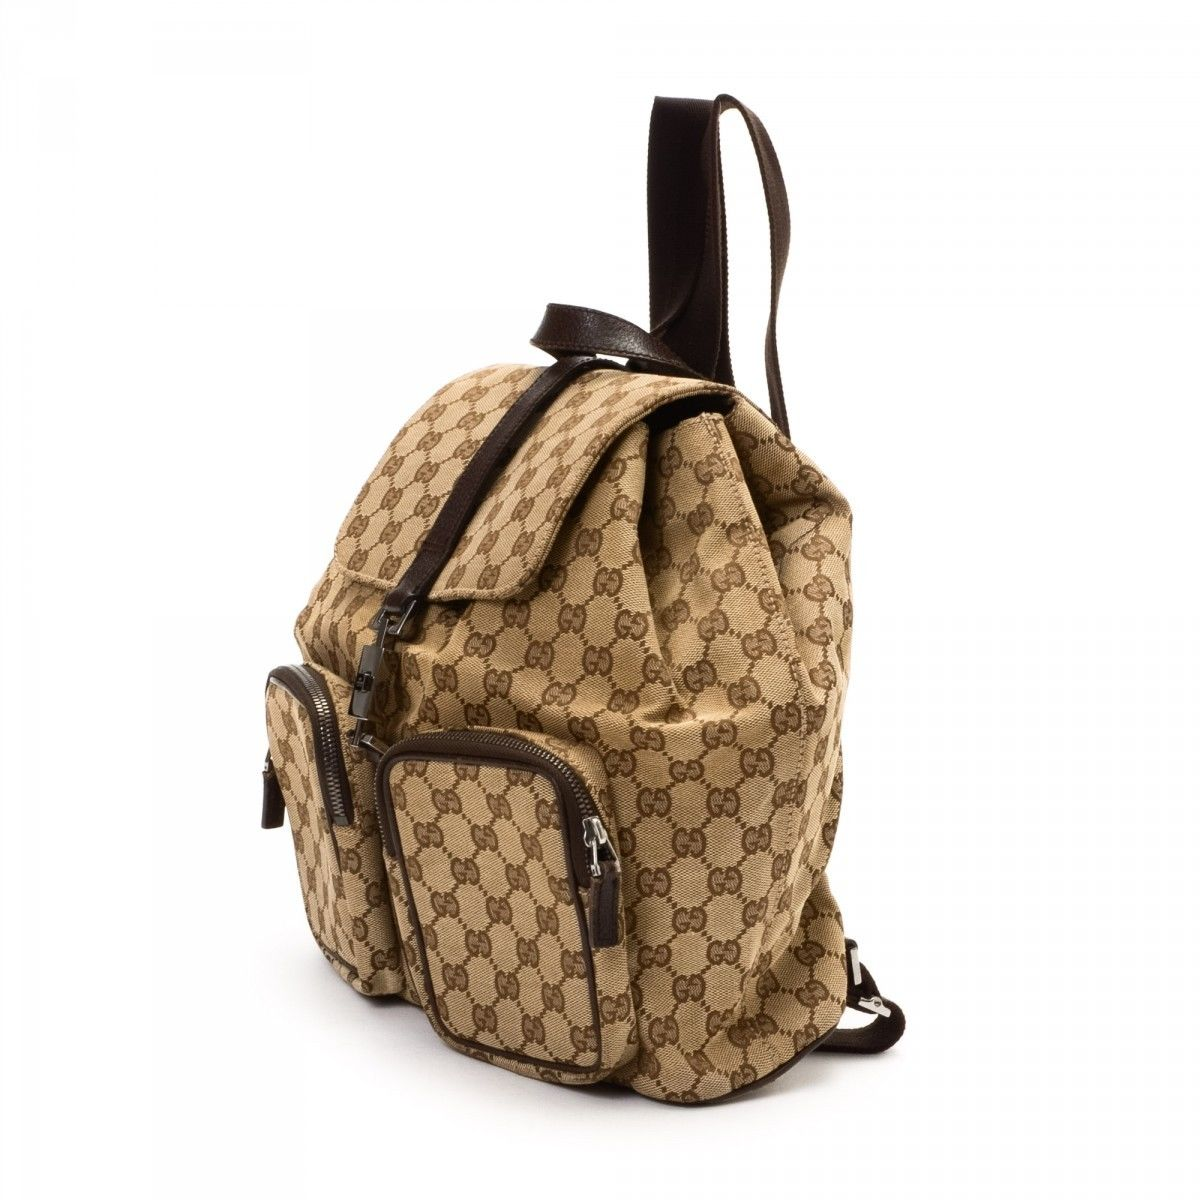 1c4726ad5ec Gucci Backpack. LXRandCo guarantees the authenticity of this vintage Gucci  backpack. This stylish knapsack comes in beautiful canvas. Fair condition   ...